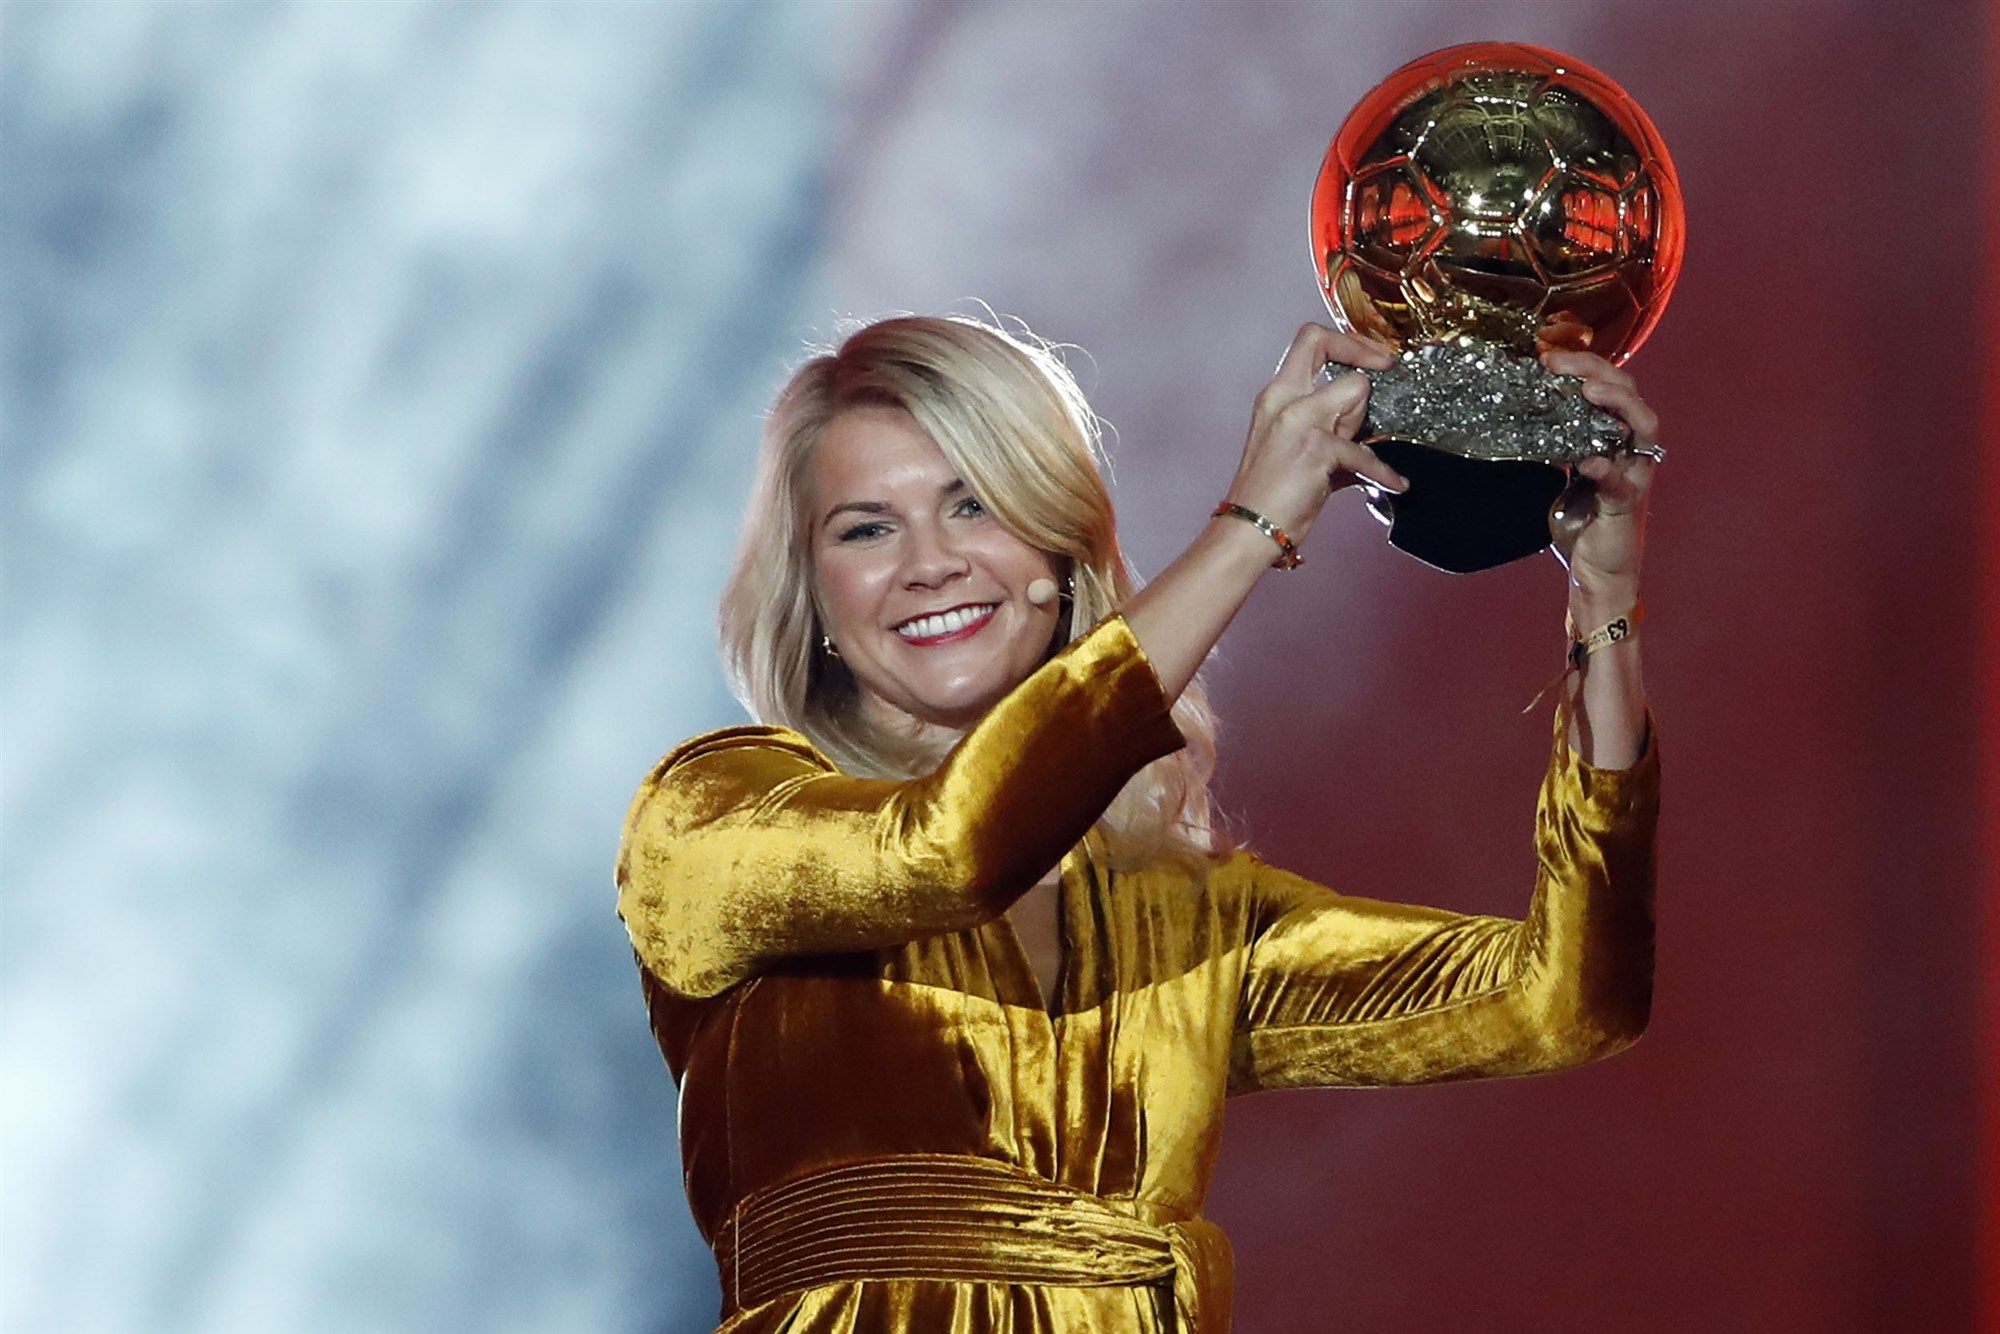 Ada Hegerberg's Ballon d'Or Marred by Male Chauvinism